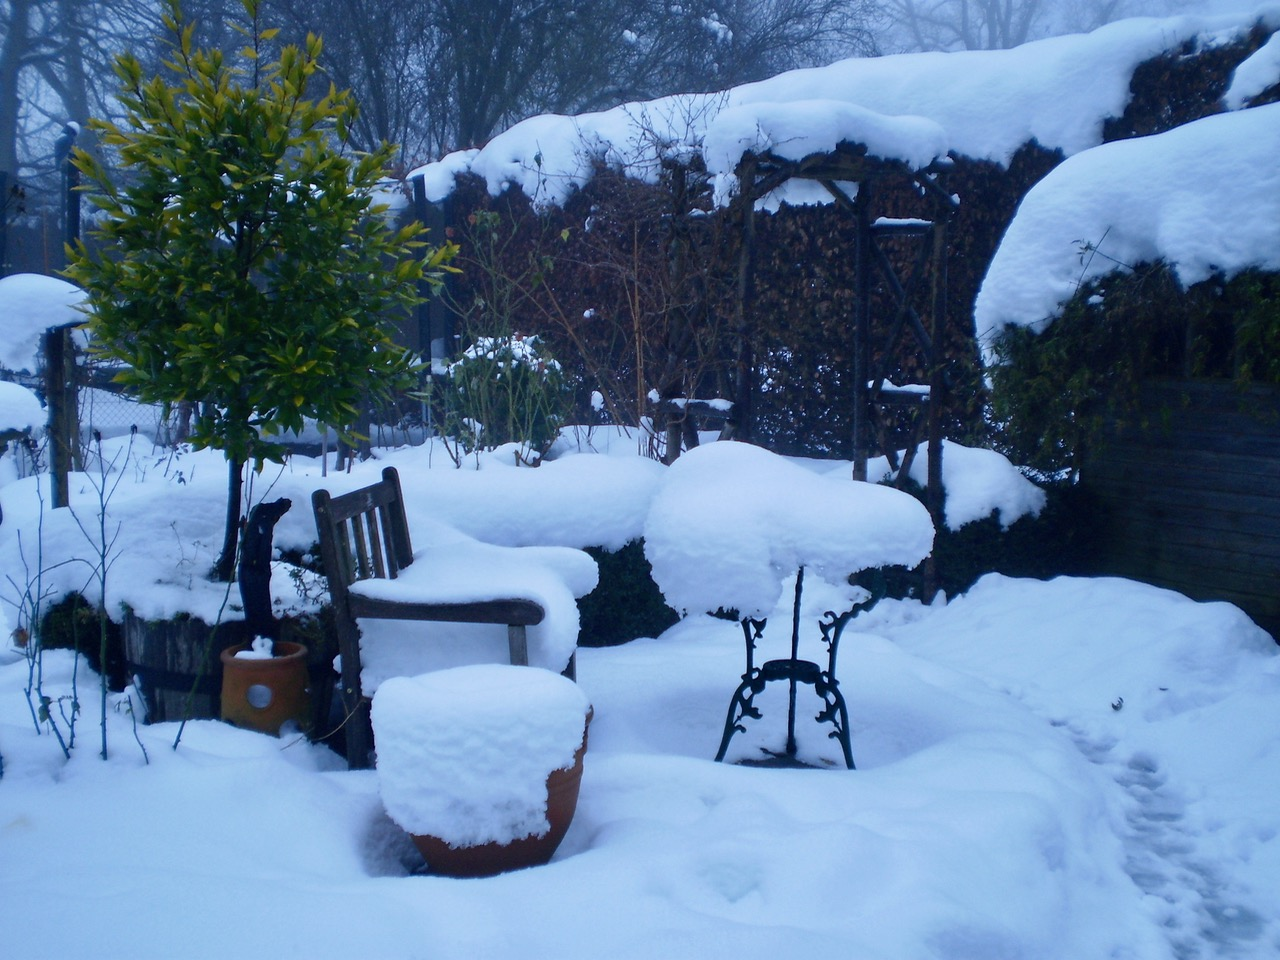 Winter in French - L'hiver